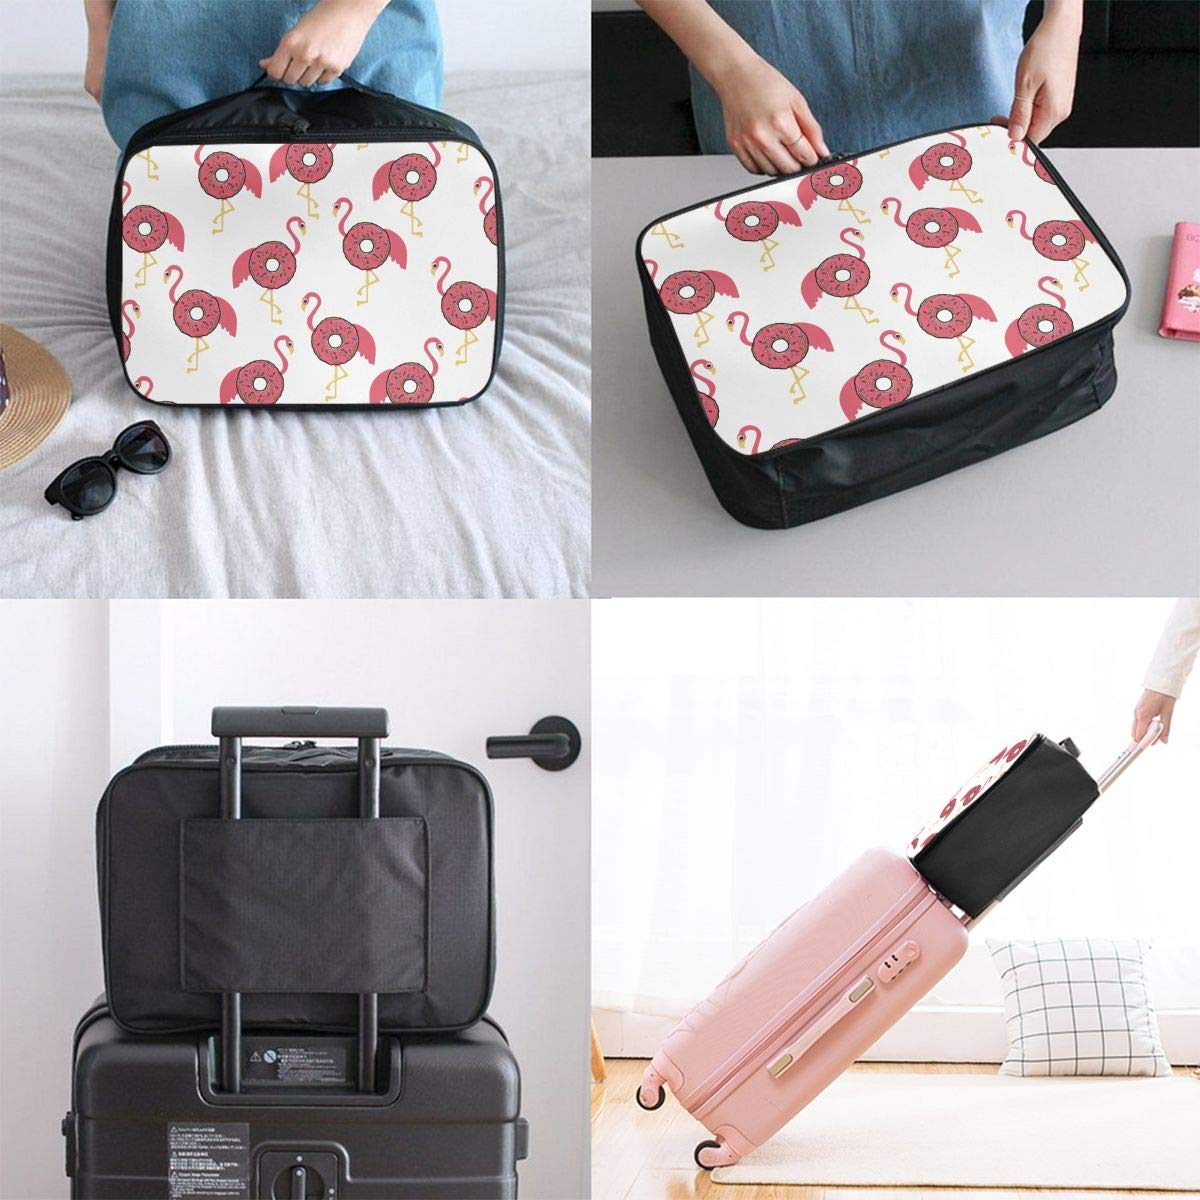 Nylon Lightweight Tote Luggage Bag Waterproof Luggage Hanging Bag Flamingo Donut Funny Overnight Bag Gym Holiday Travel Duffle Bag Weekender Bag In Trolley Handle